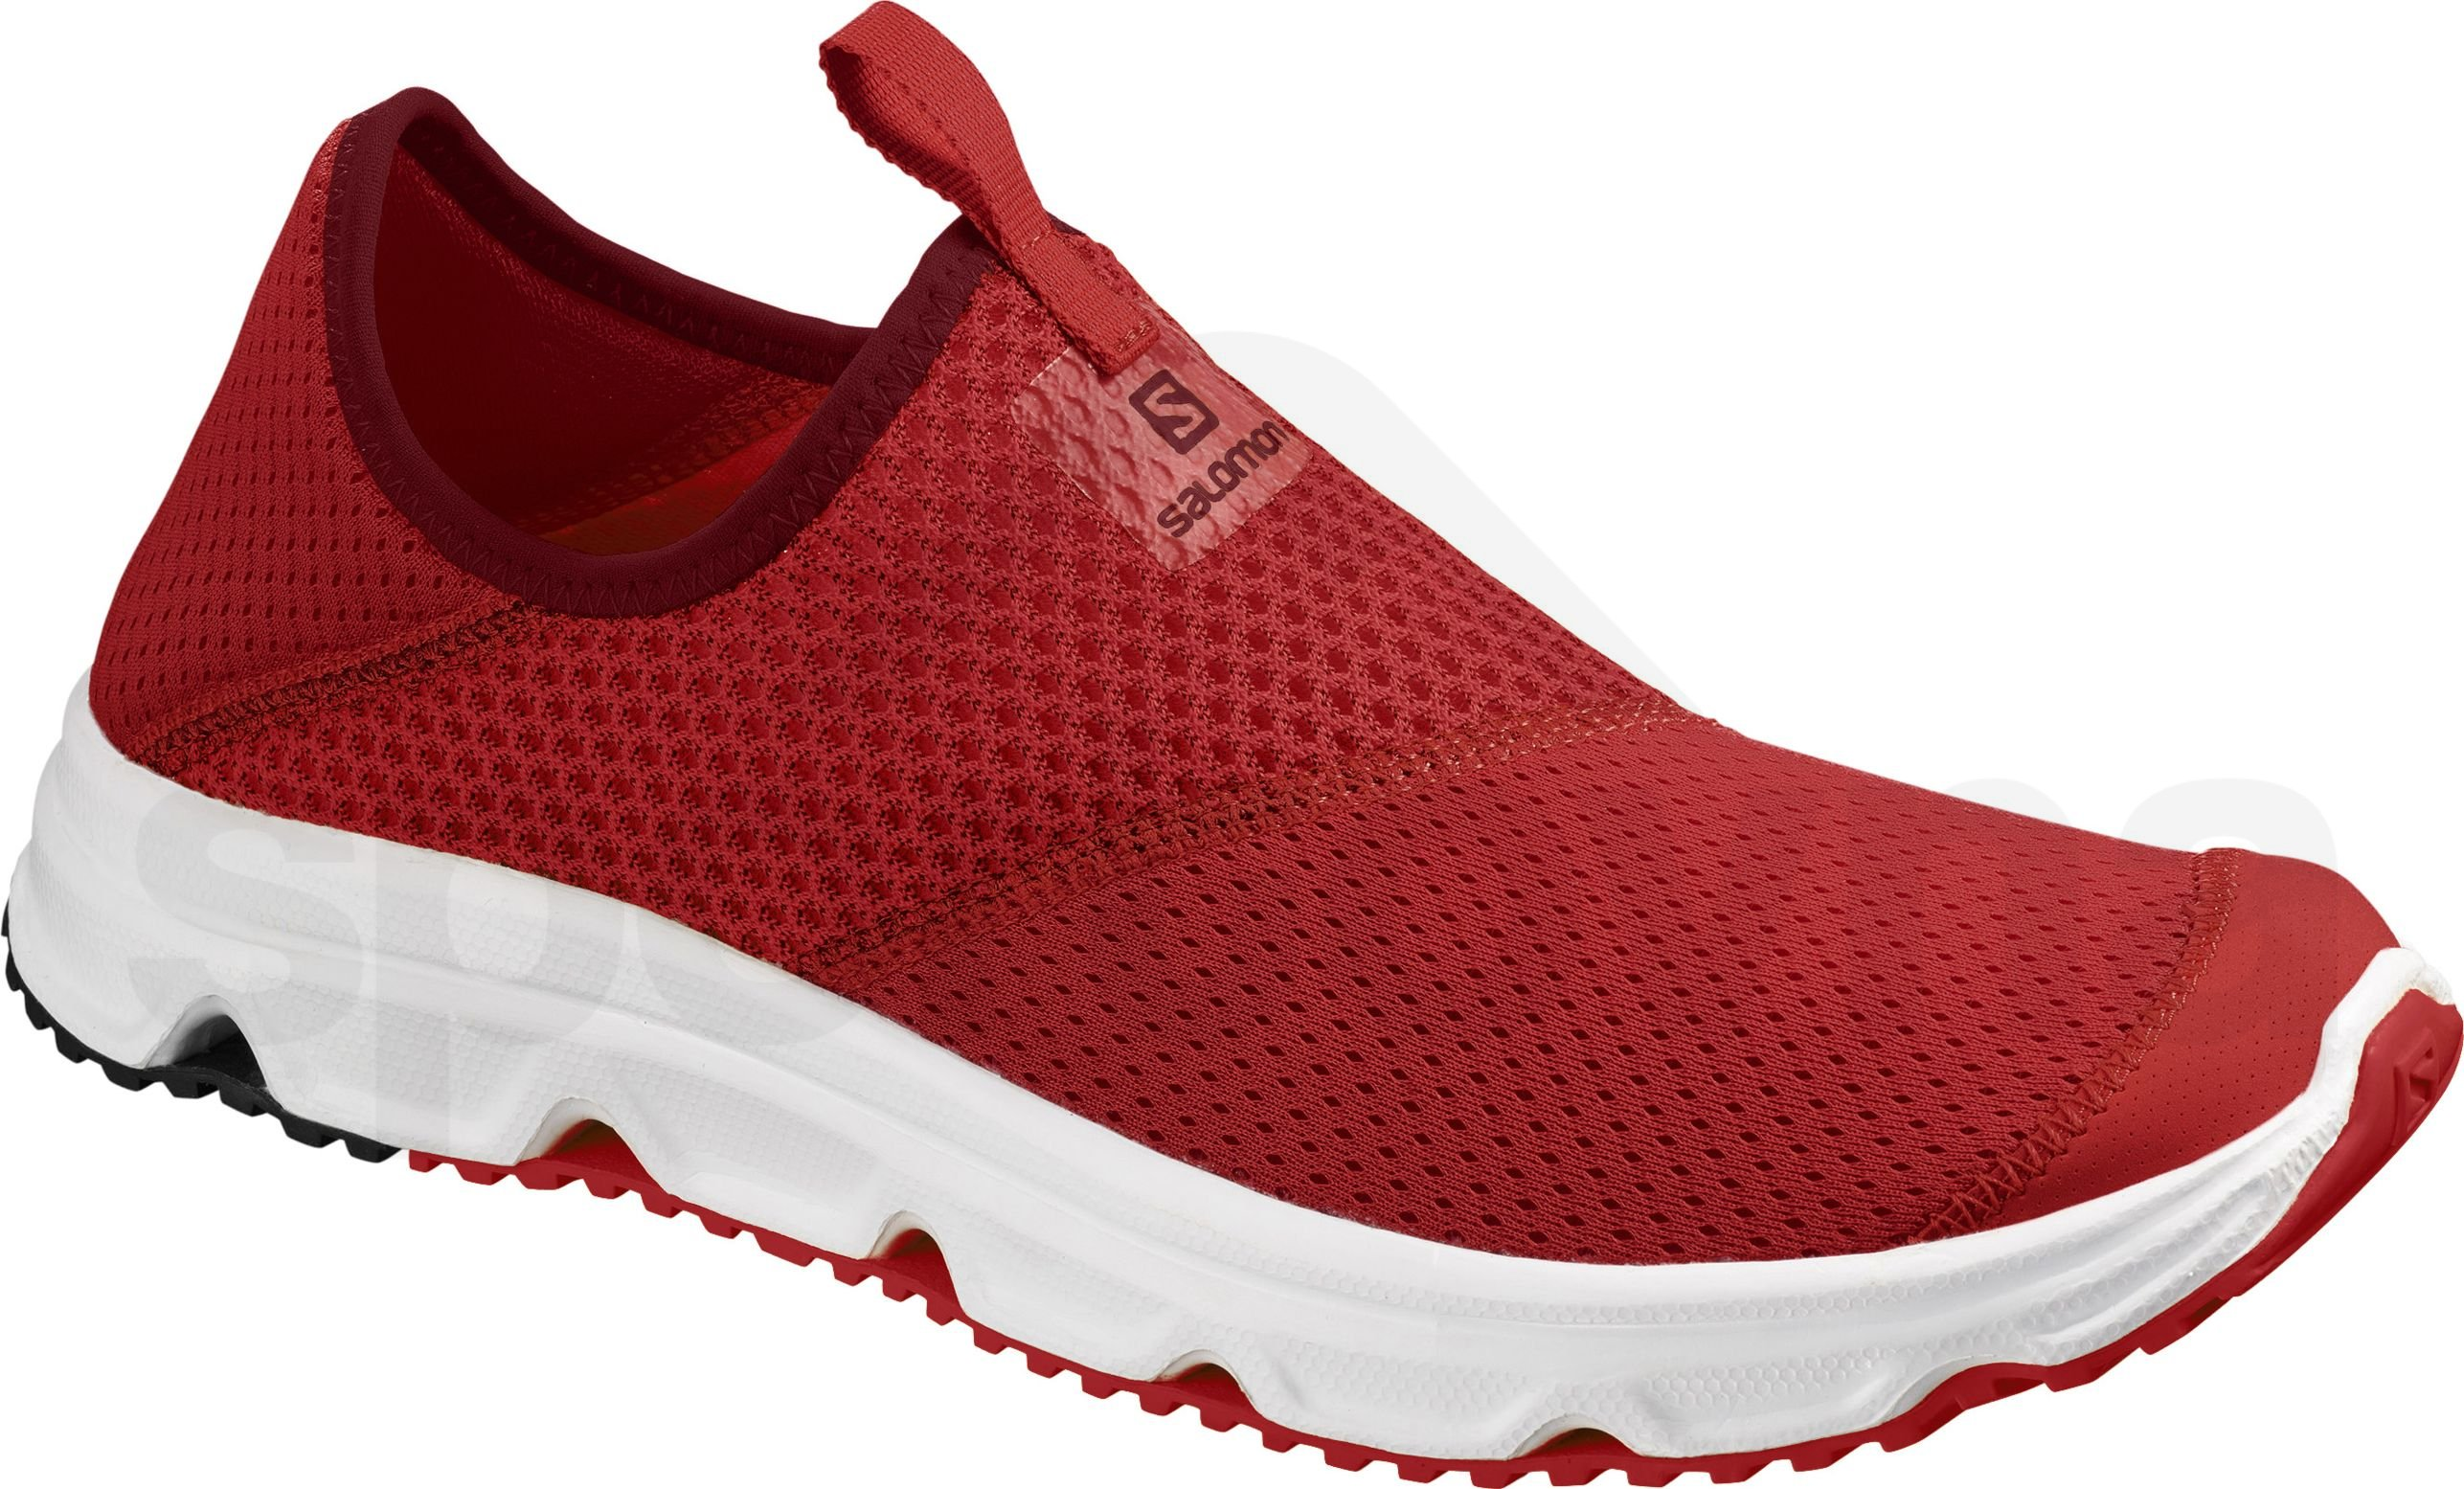 L40673700_0_M_rx_moc_4 0_high_risk_red.jpg.originald